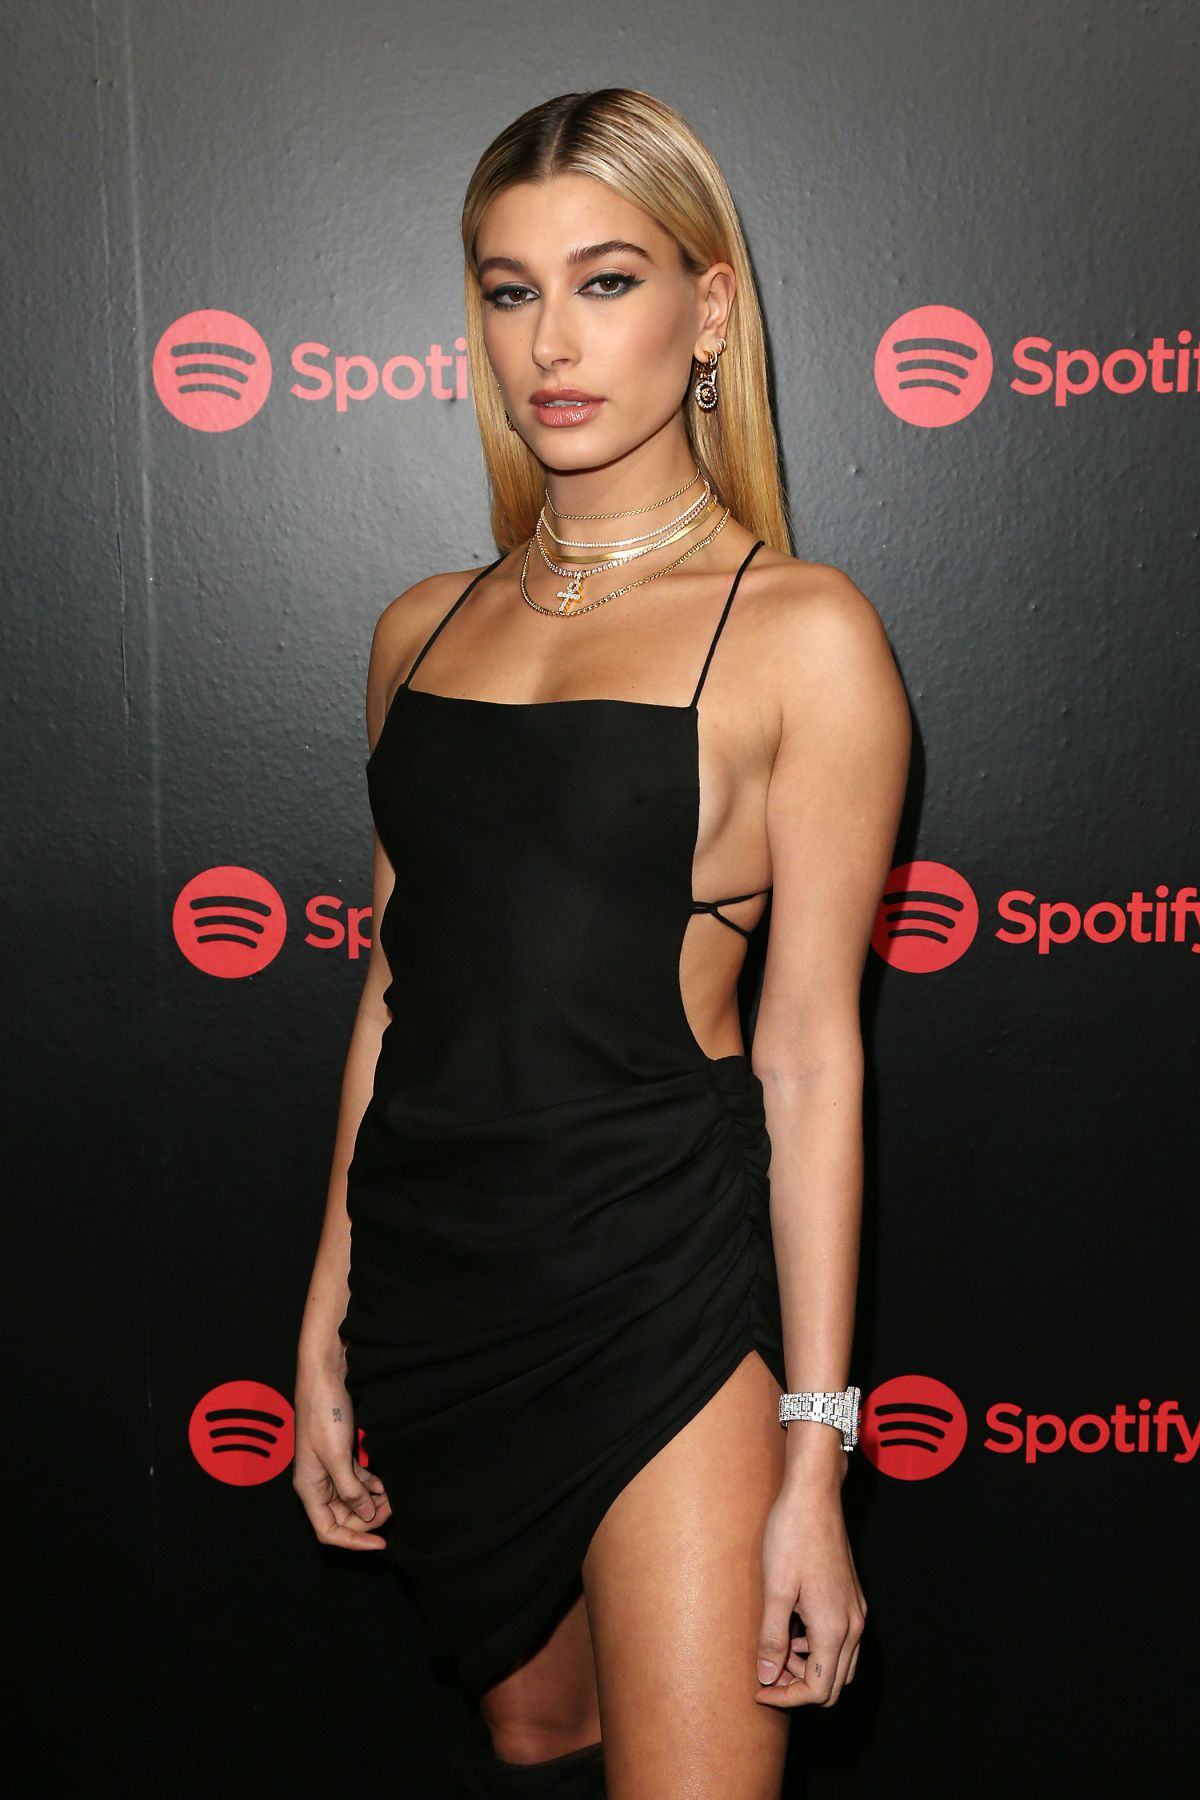 Best New Years Eve Manicure Ideas New Years Eve Nails: HAILEY BALDWIN At 2018 Spotify Best New Artists Party In